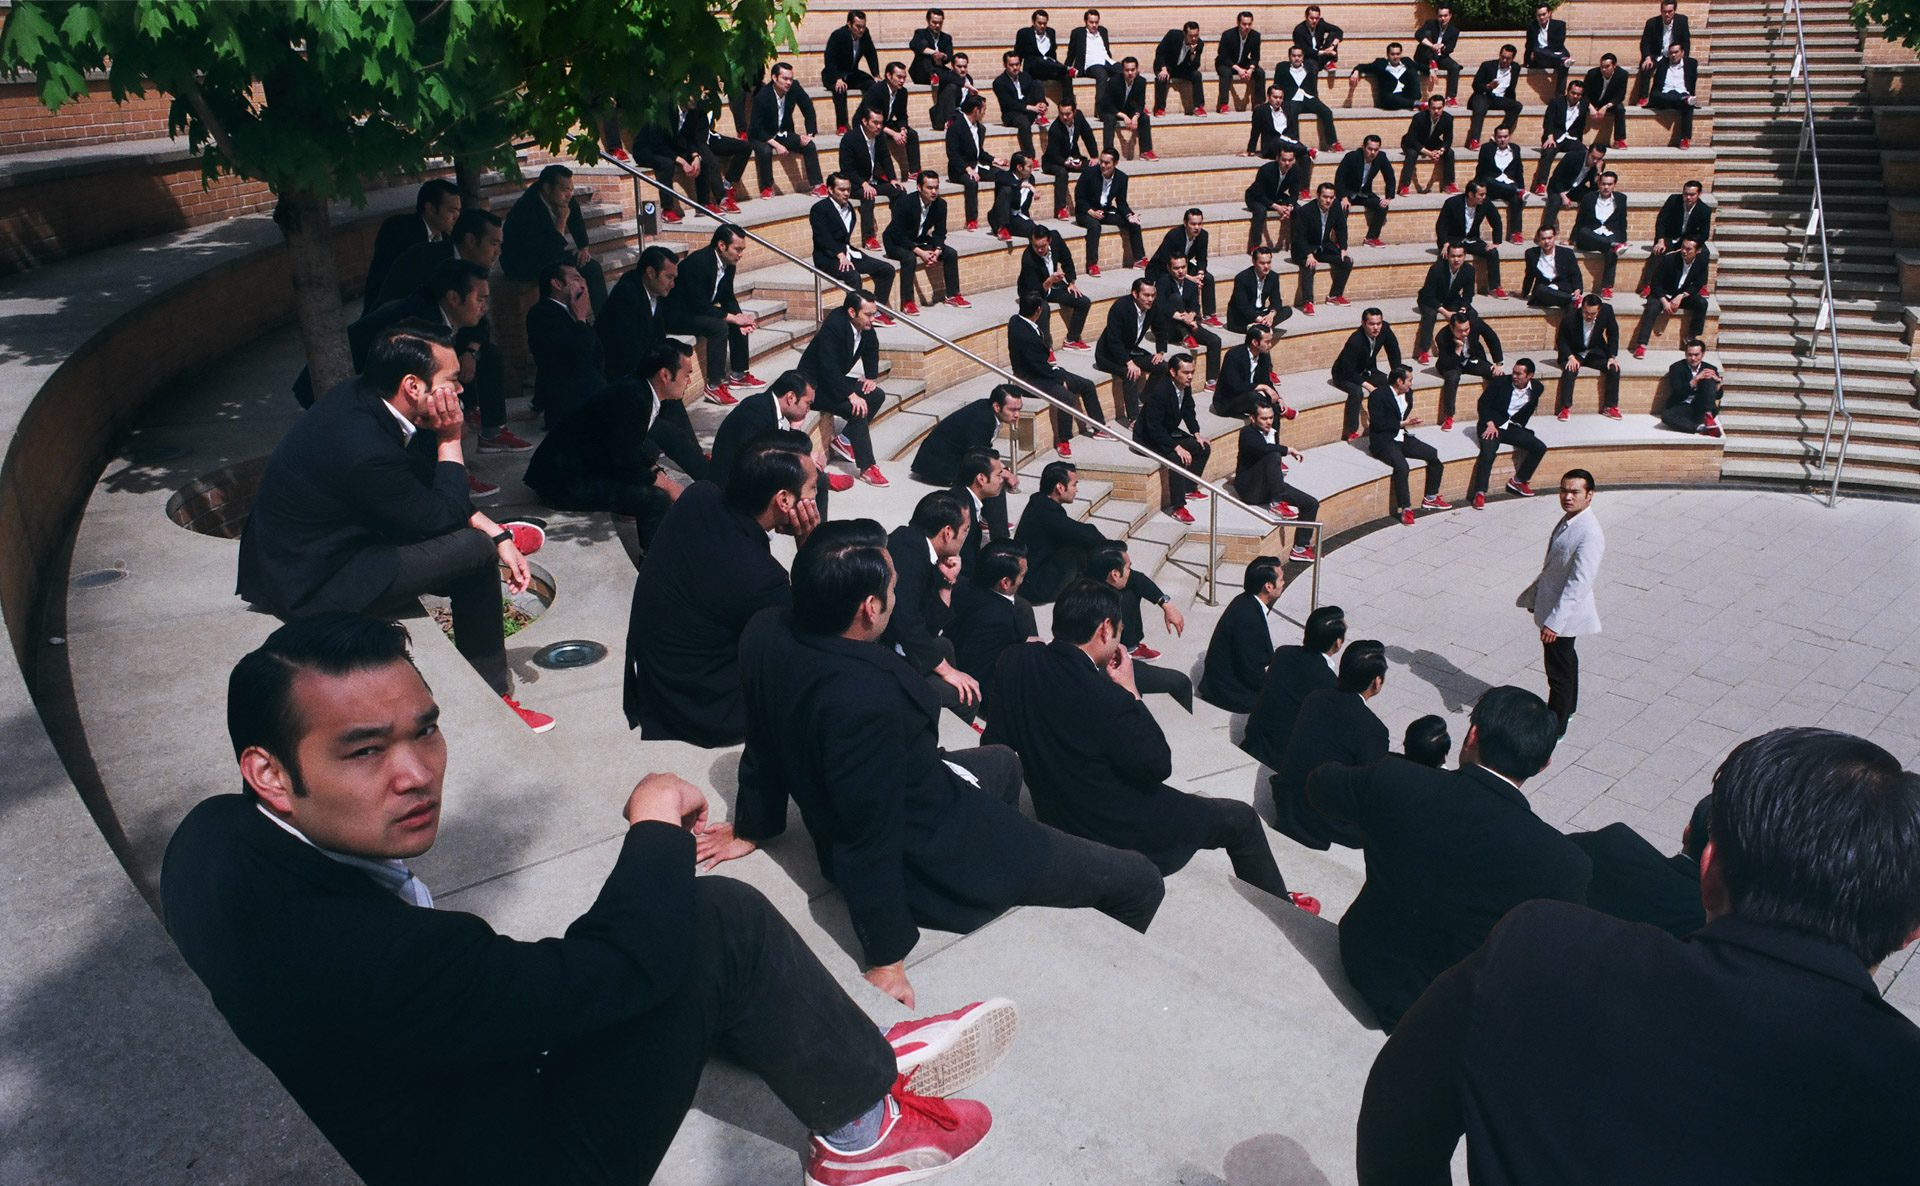 Amphitheater full of asians in dark suits, with the same asian in white standing in the center looking into the camera.